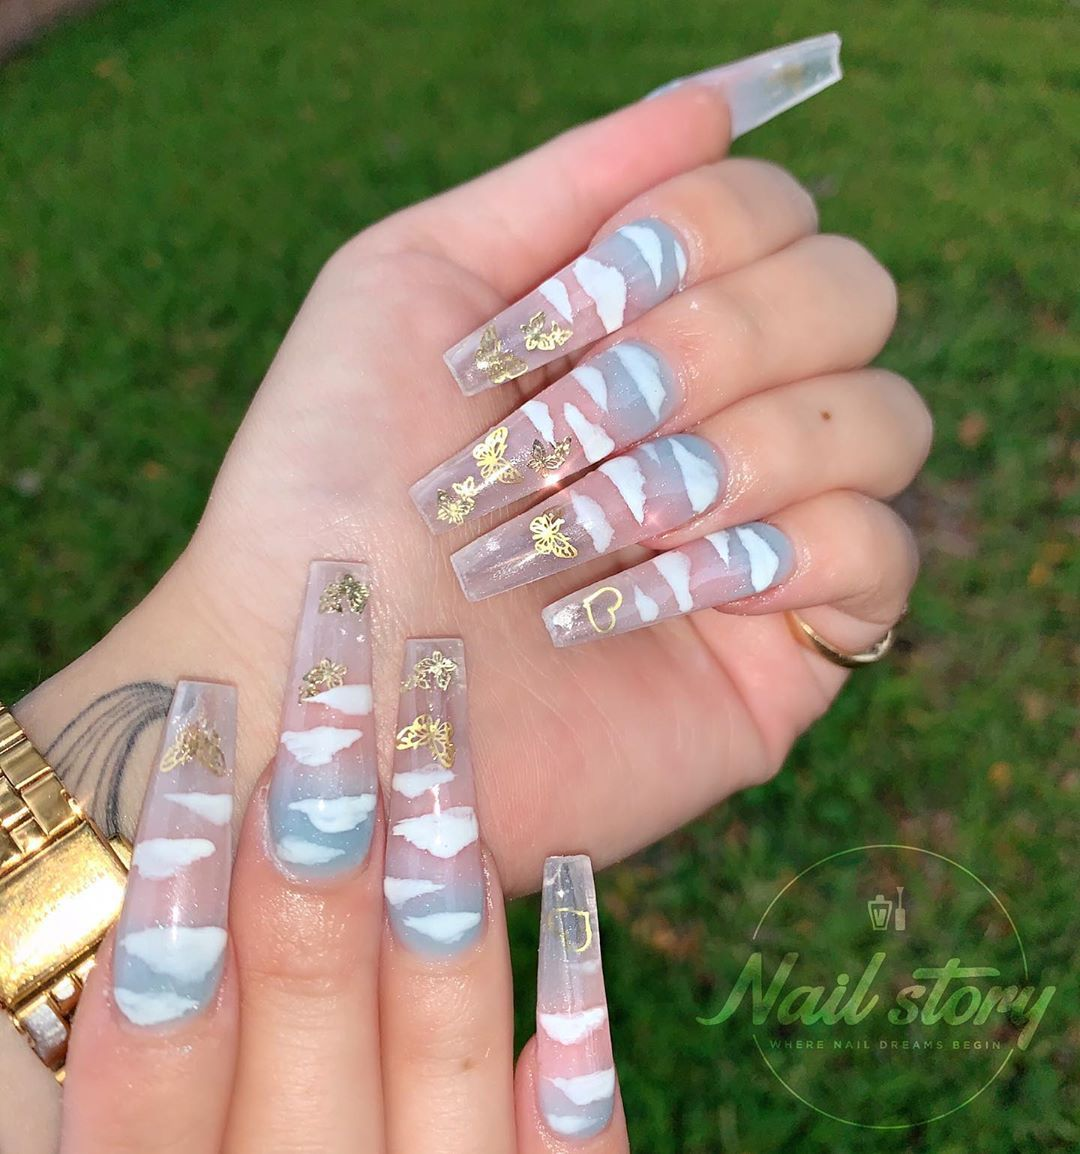 Nail Story Of Chino Hills On Instagram Head In The Clouds Blue Pink To C In 2020 Blue Ombre Nails Clear Acrylic Nails Spring Acrylic Nails